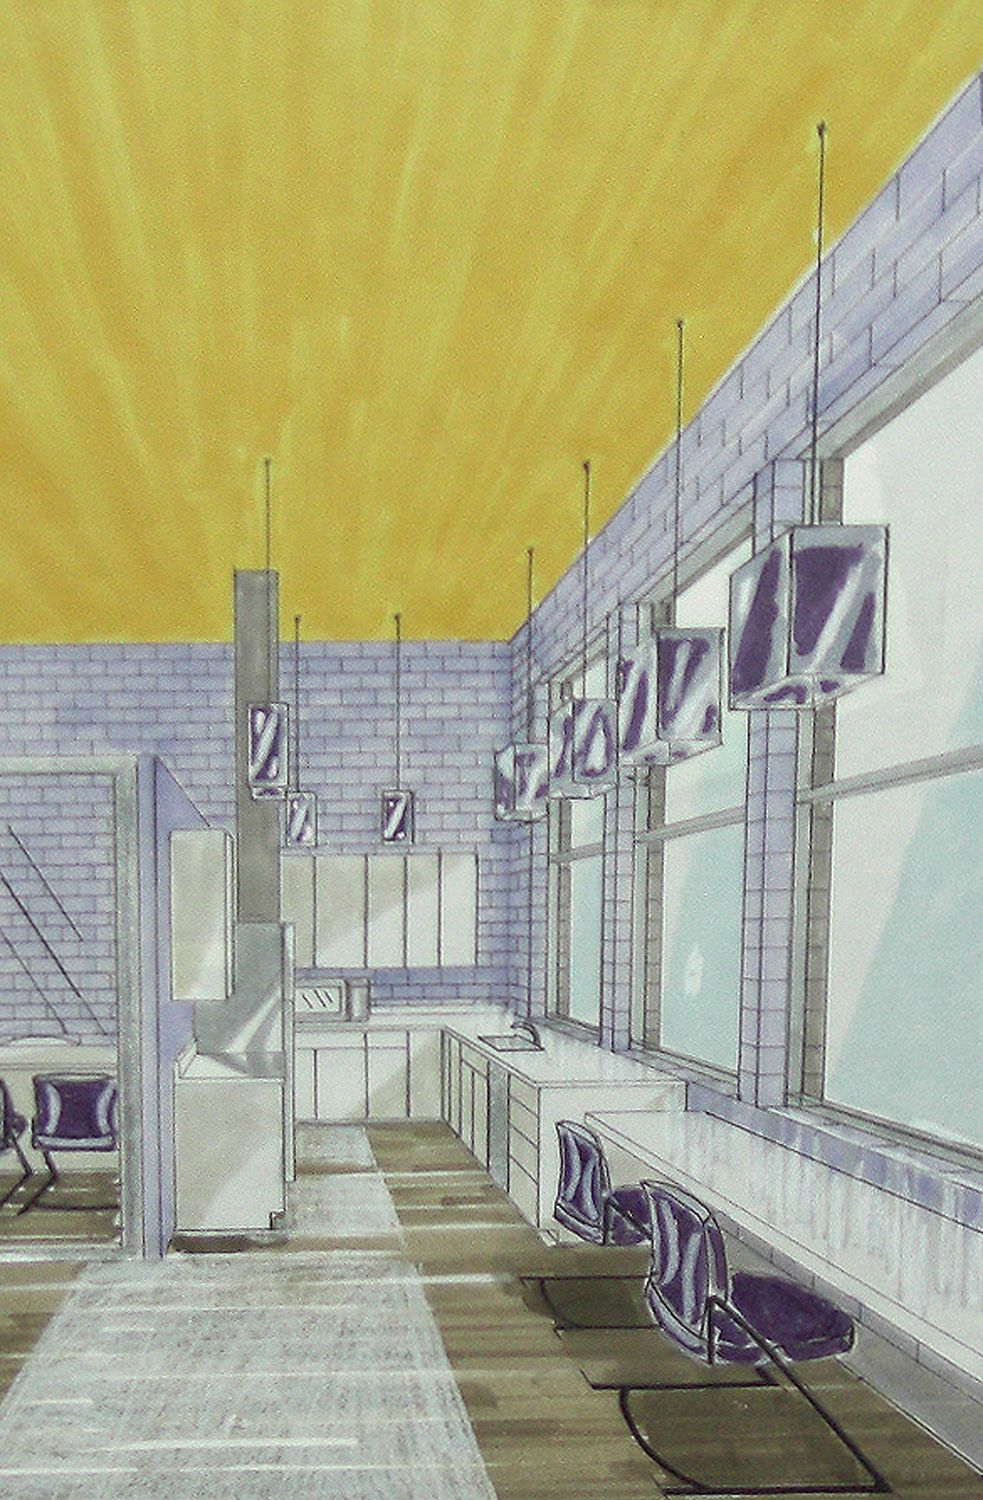 Room Drawing Pencil: Marker & Colored Pencil Rendering Of A 1 Point Perspective